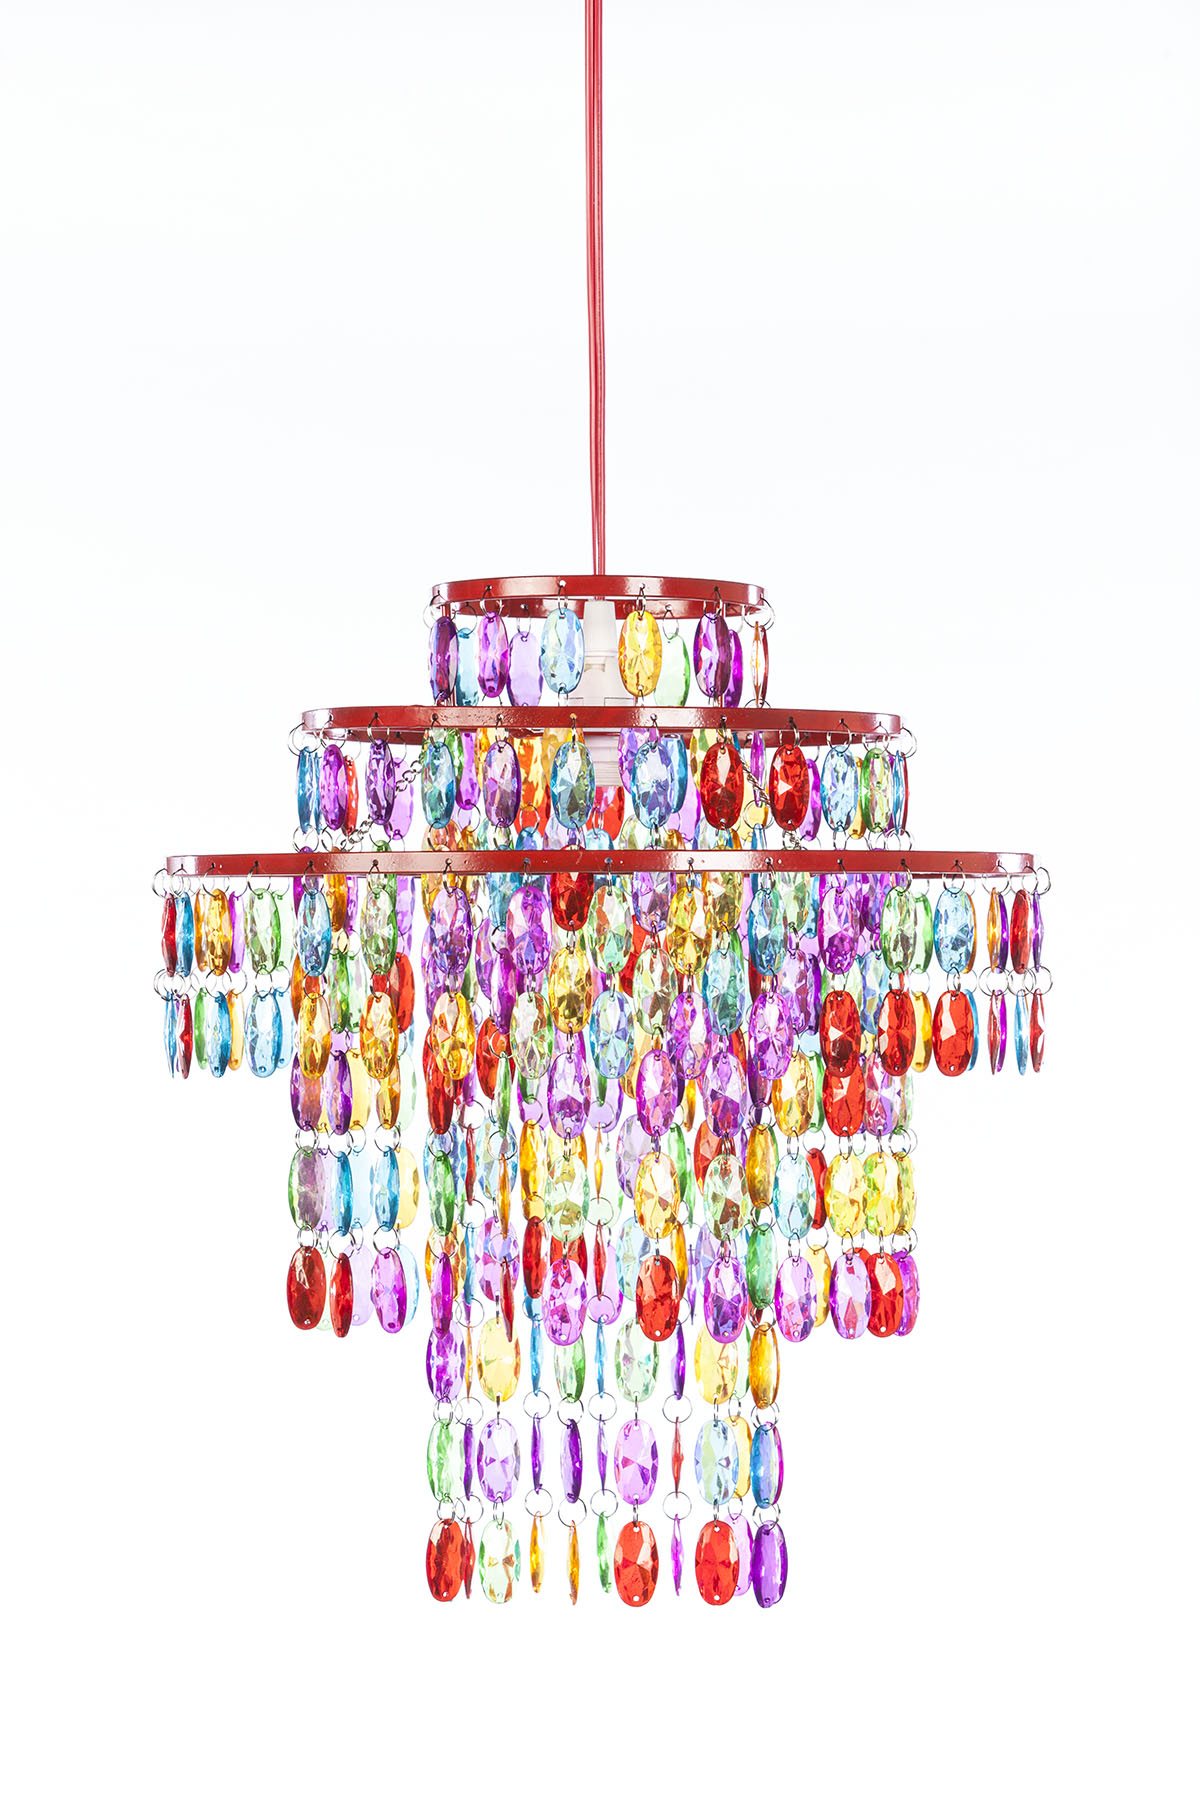 Crystal chandeliers gypsy color gypsy color pendant 1 light 3 tier chandelier multi color h 14 x w 13 upc 682962248951 sku gy3lmc aloadofball Image collections